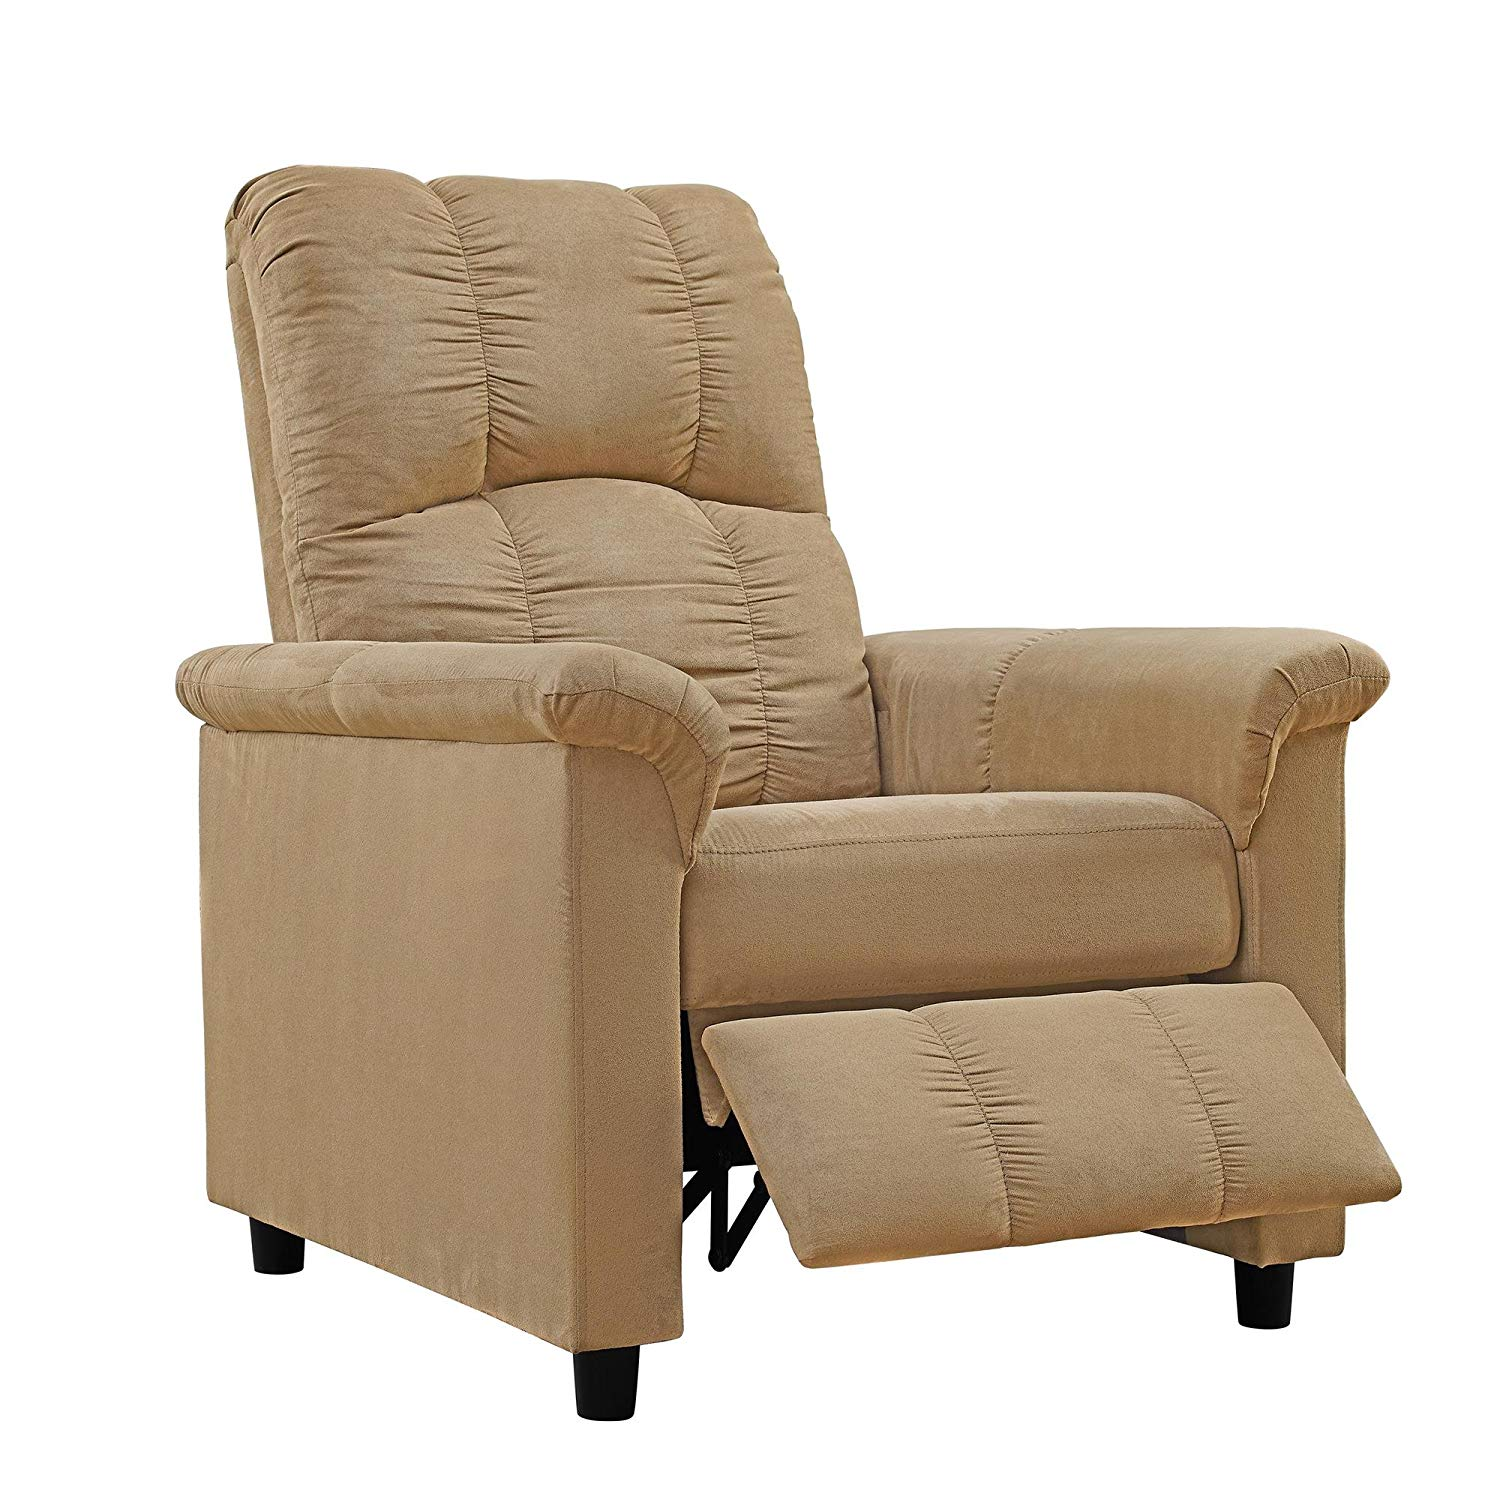 Best Rated Small Recliners Top 10 Best Recliner Chairs In 2019 Top Best Pro Review